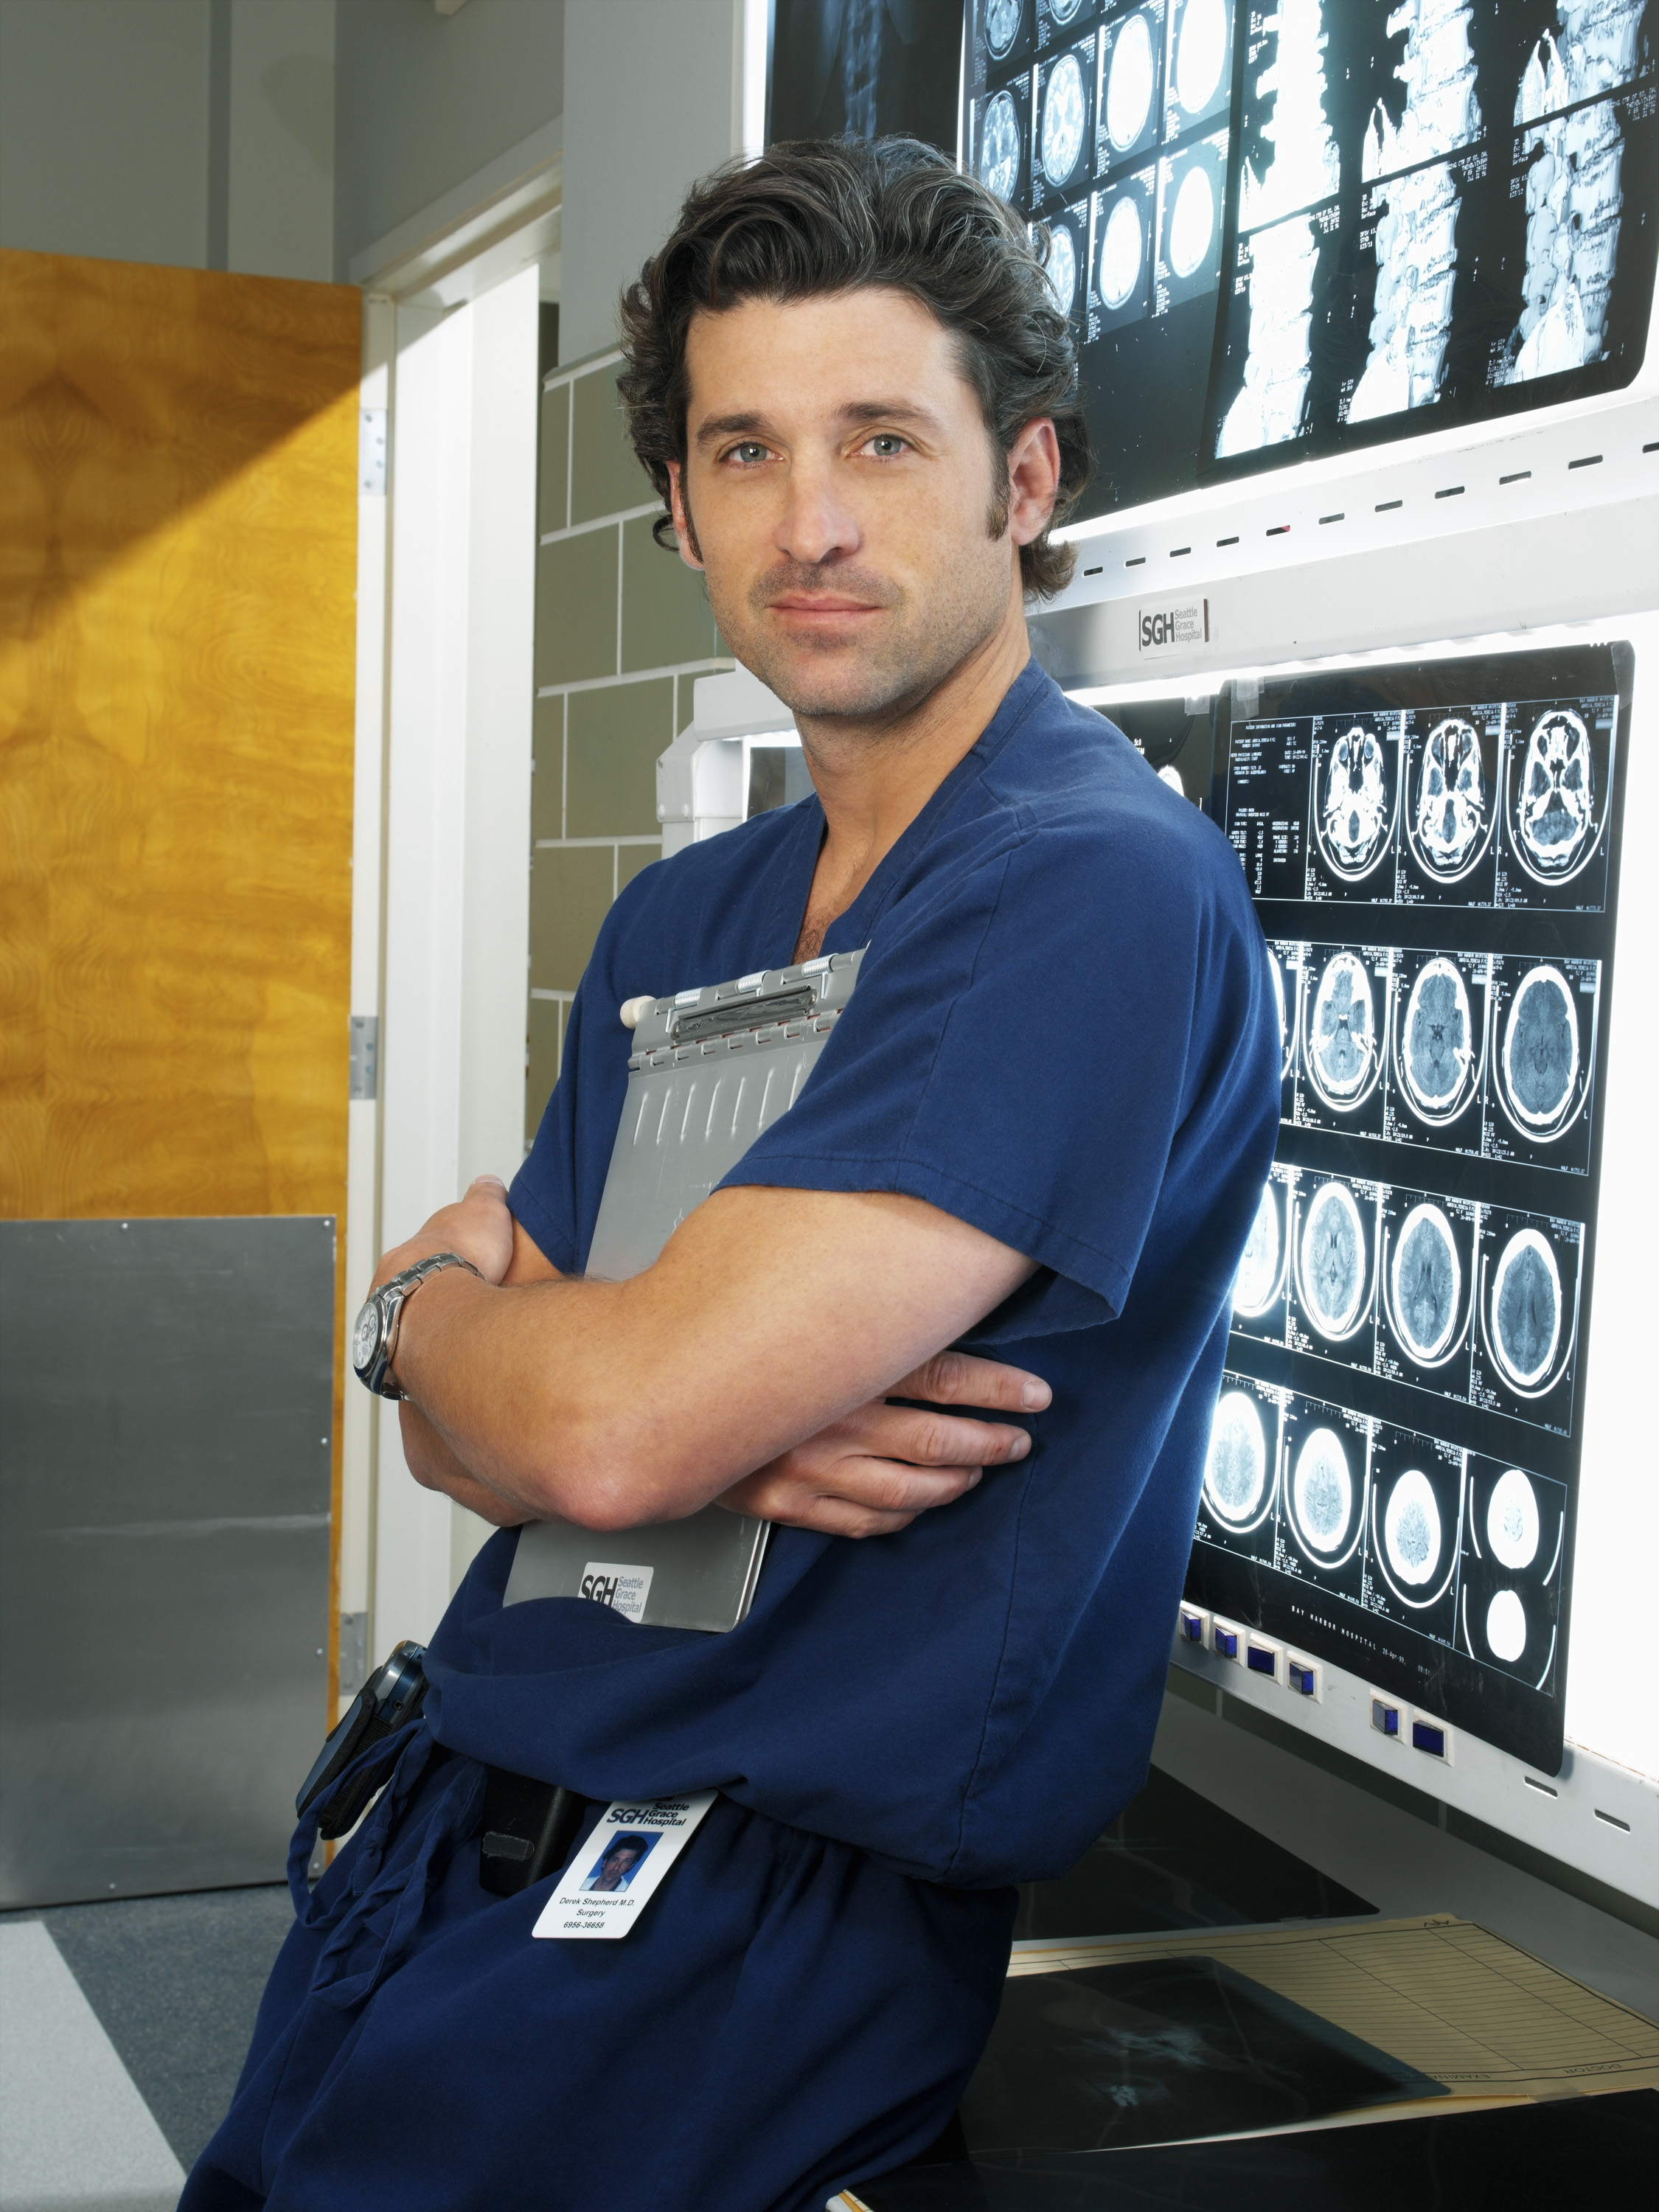 Patrick Dempsey as Dr. Derek Shepherd in Grey's Anatomy